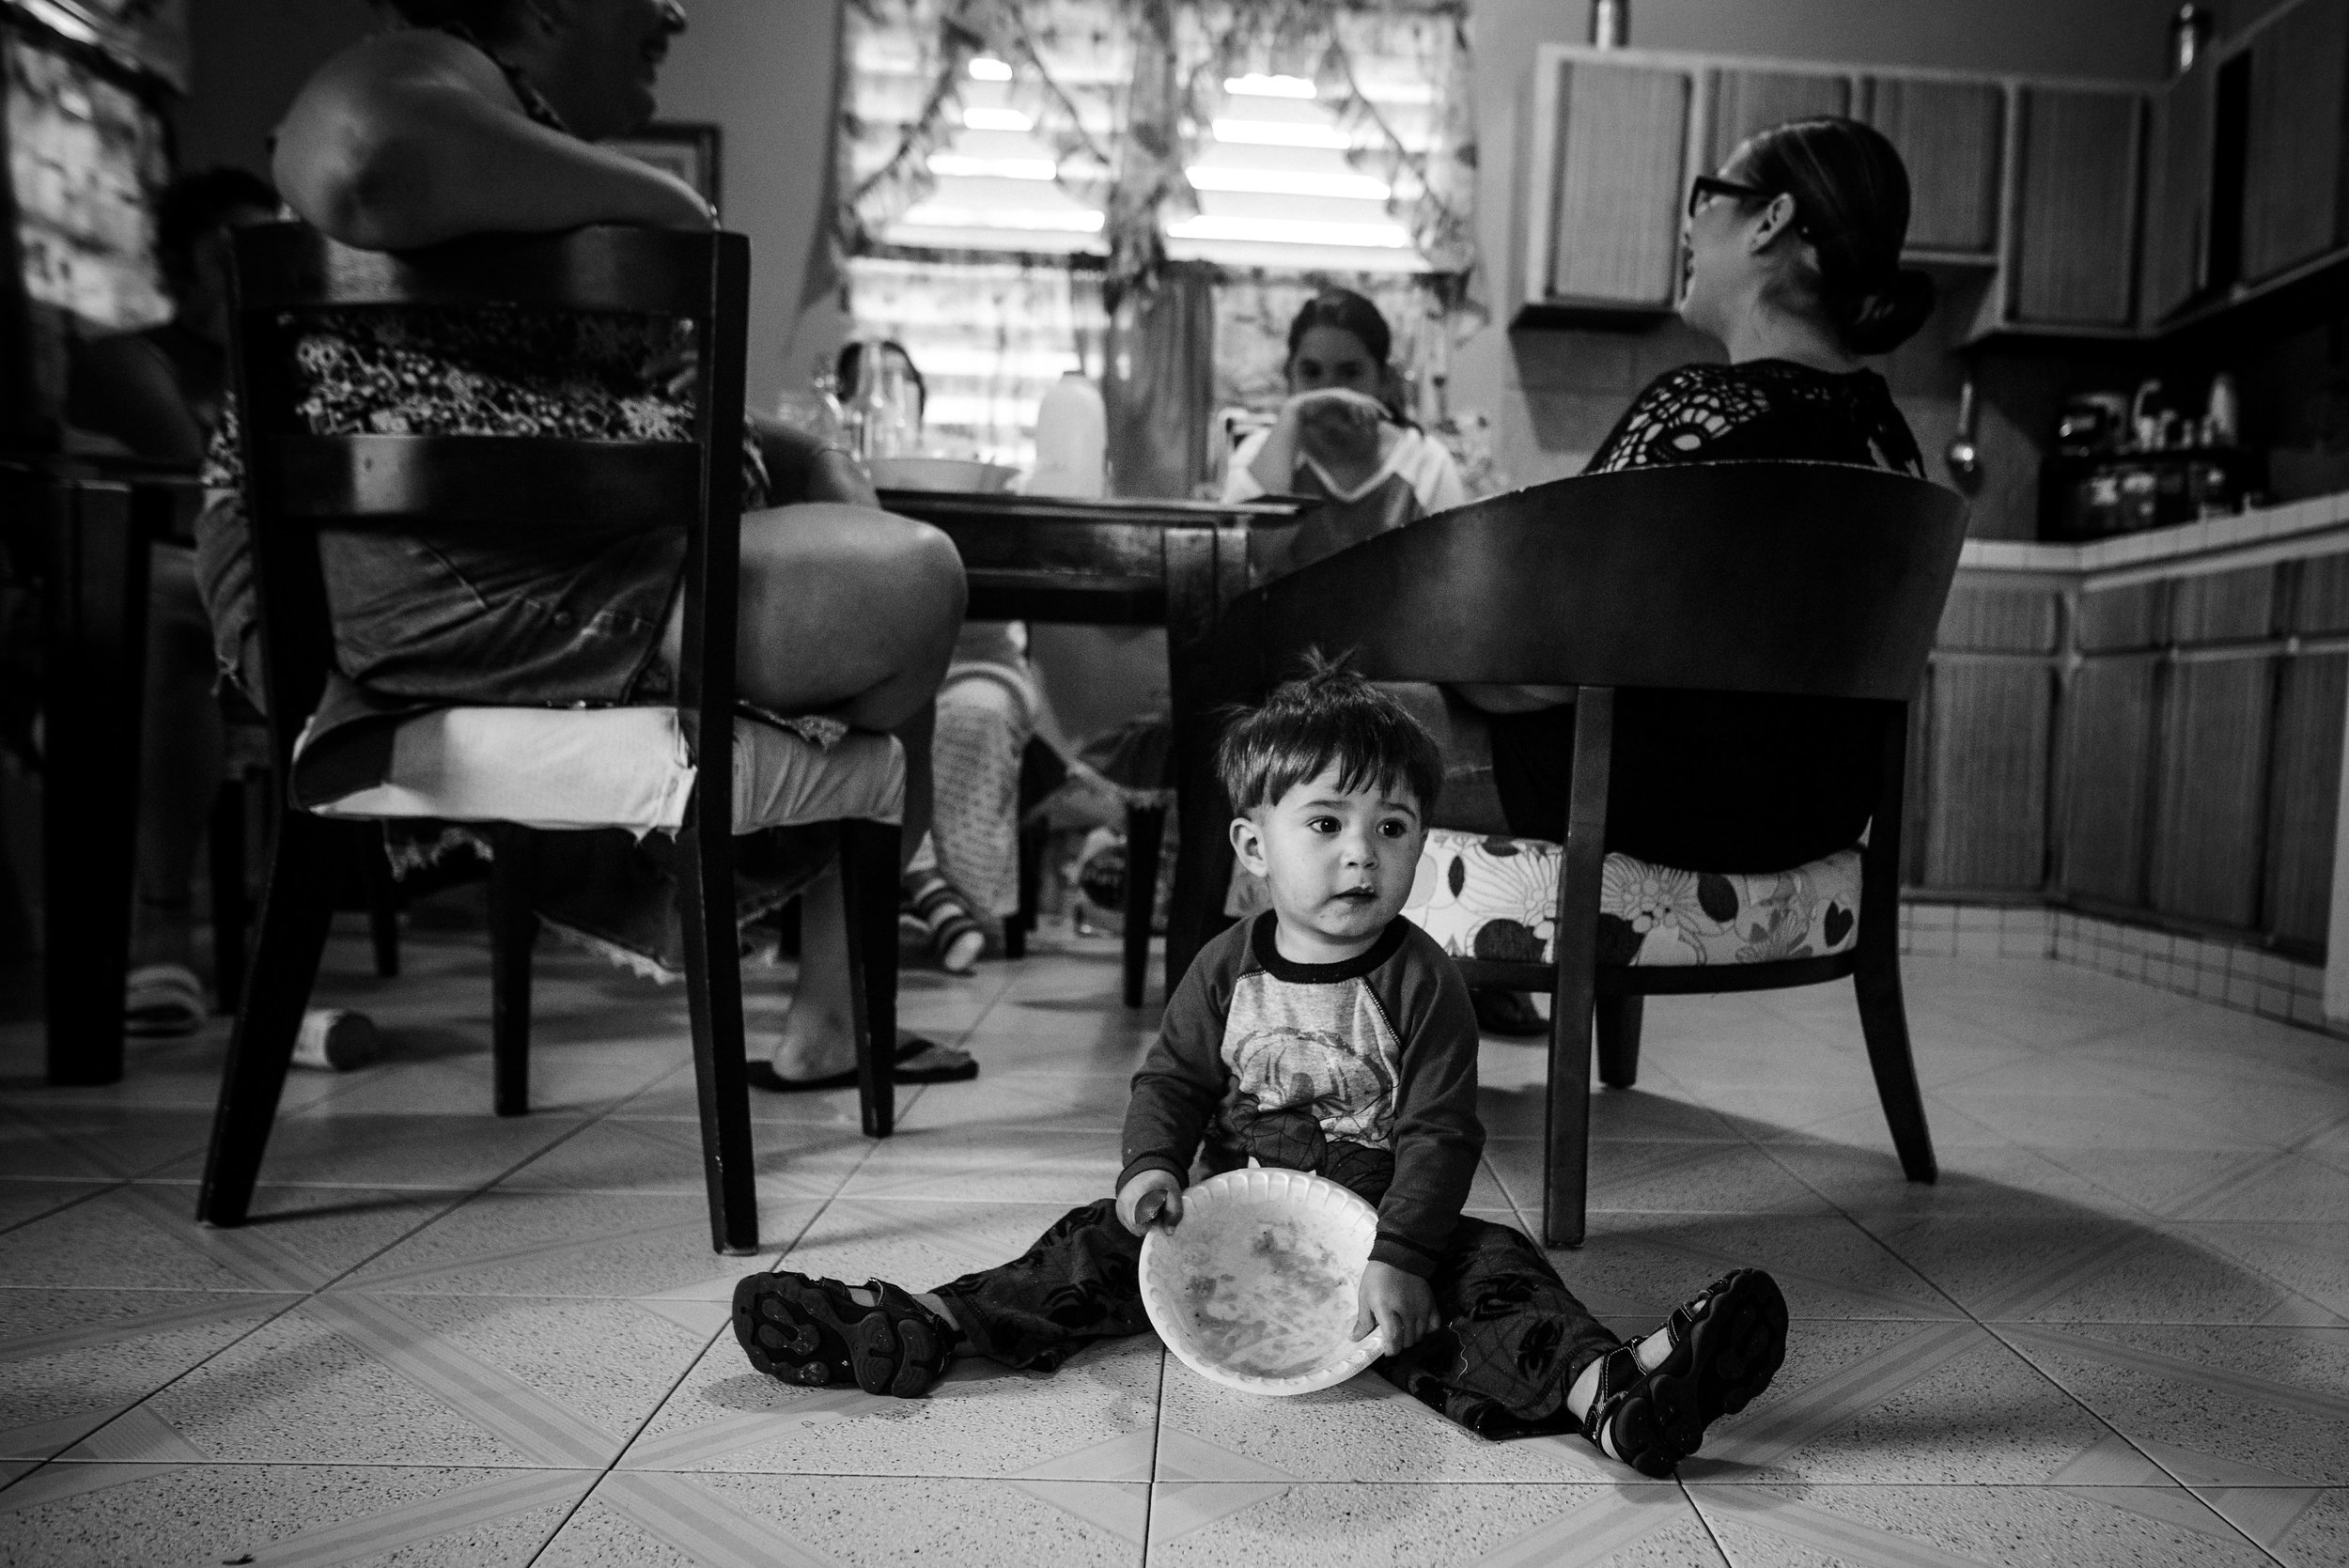 Photo credit: Aniya Emtage Legnaro  Grise (far right) sits at the table with her mother and sister while her nephew finishes breakfast from a paper plate. At the time this was photographed, there was no running water and so eating from disposable utensils saved the purchased water. Orocovis, Puerto Rico